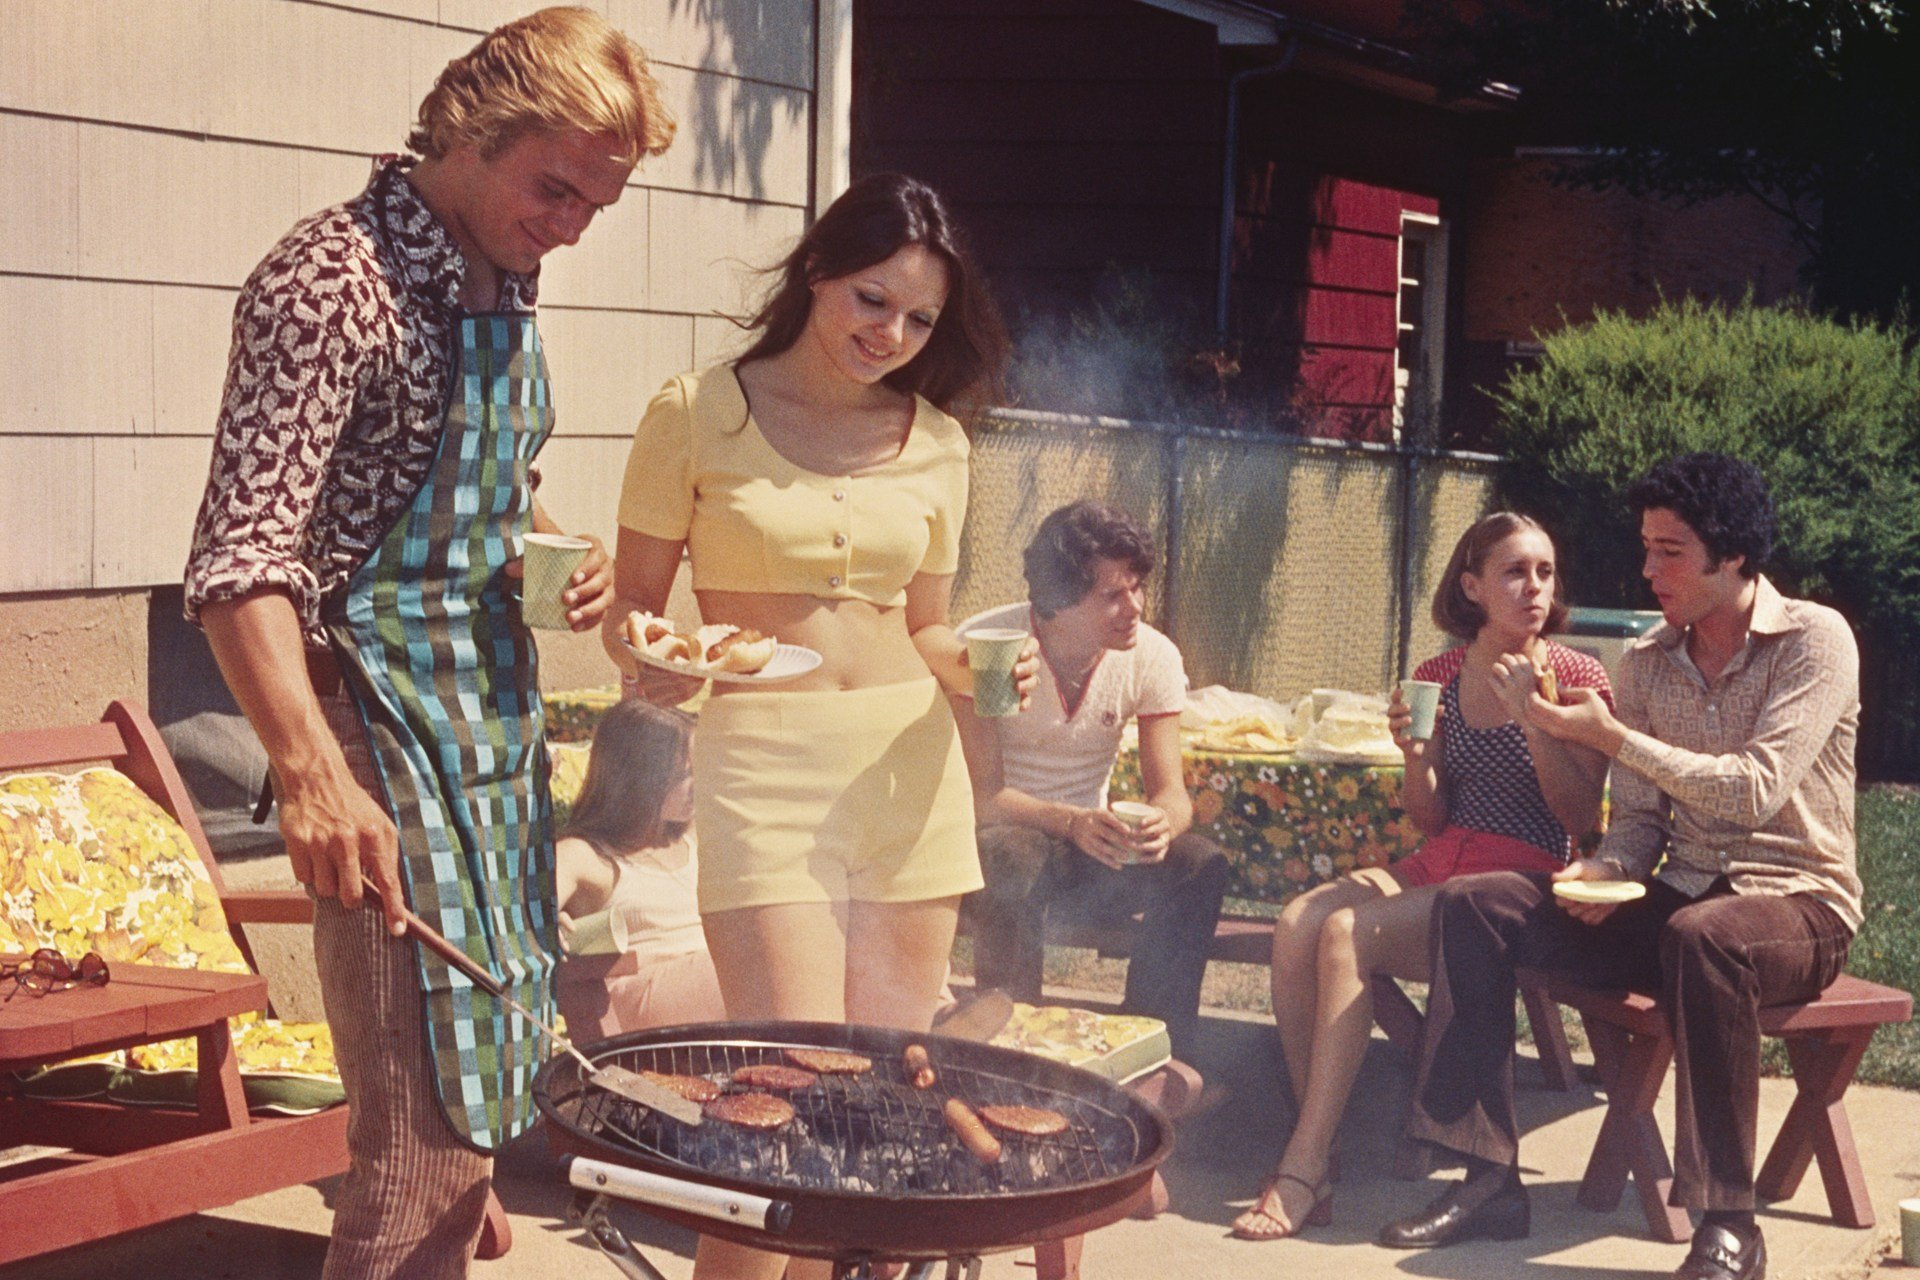 70s-retro-barbecue-pic-conde-nast-traveller-6june14-alamy